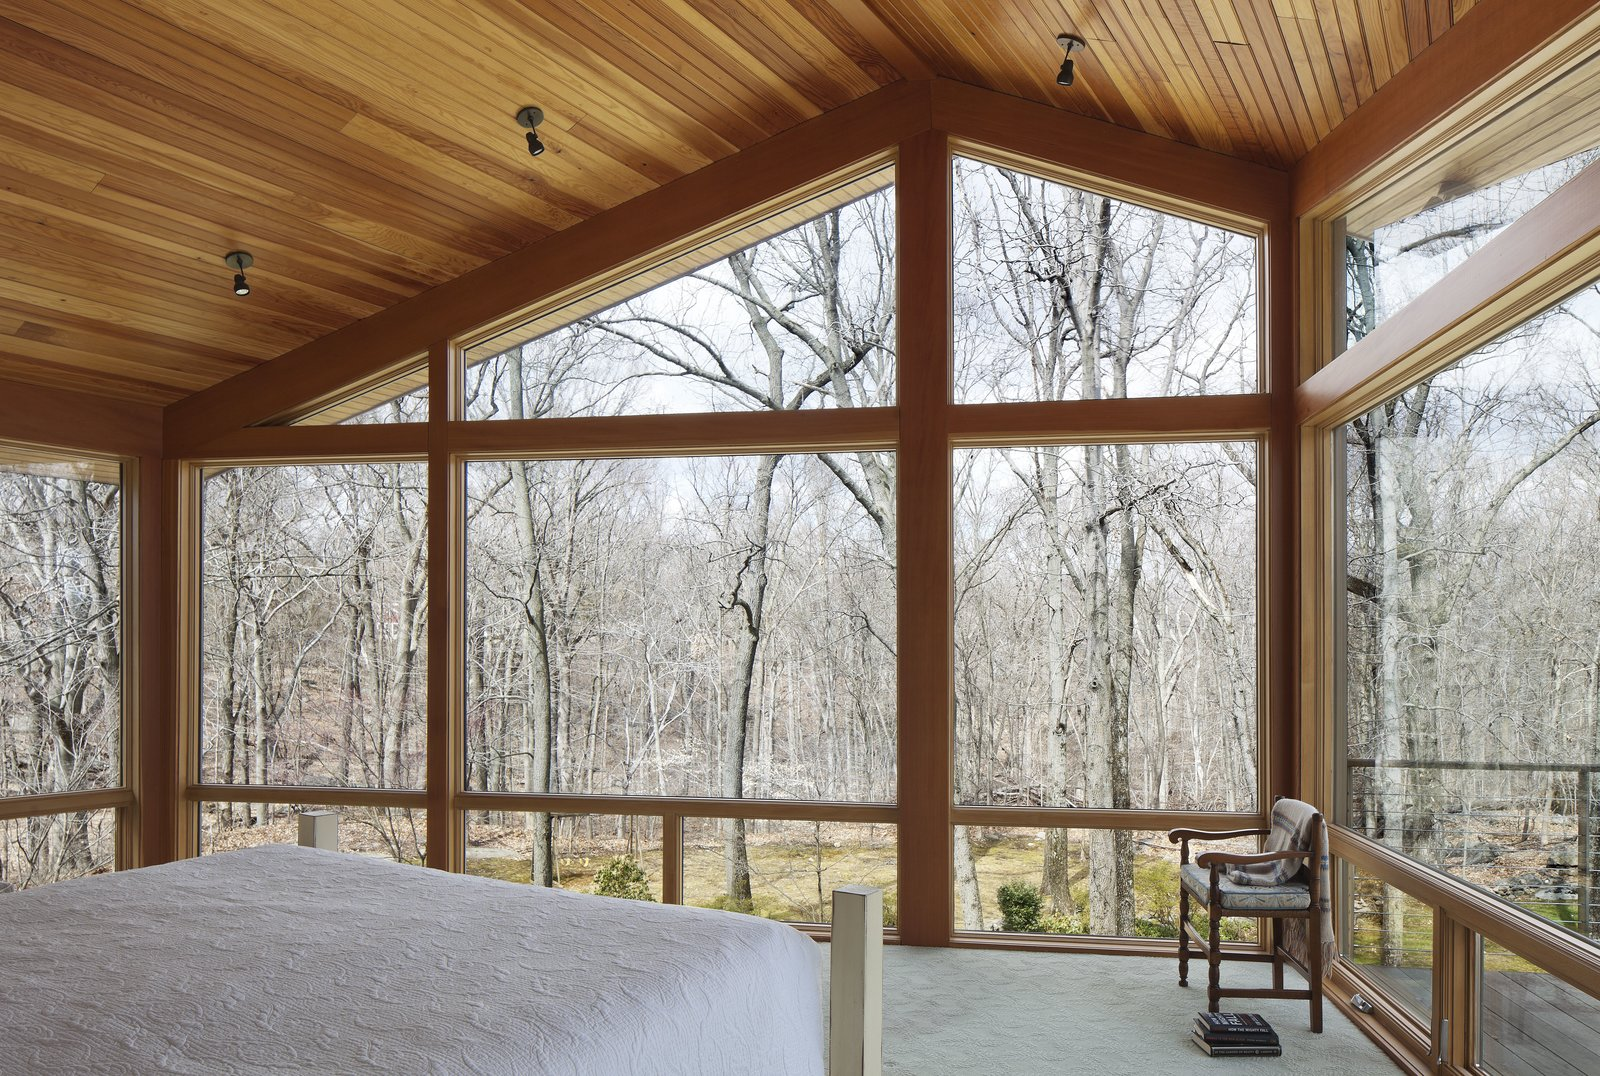 From the northeast corner of the master bedroom, the homeowners can walk out onto a deck area to enjoy the view of the woods.  Photo 7 of 7 in After a Fire, a Midcentury Home Rises from the Ashes